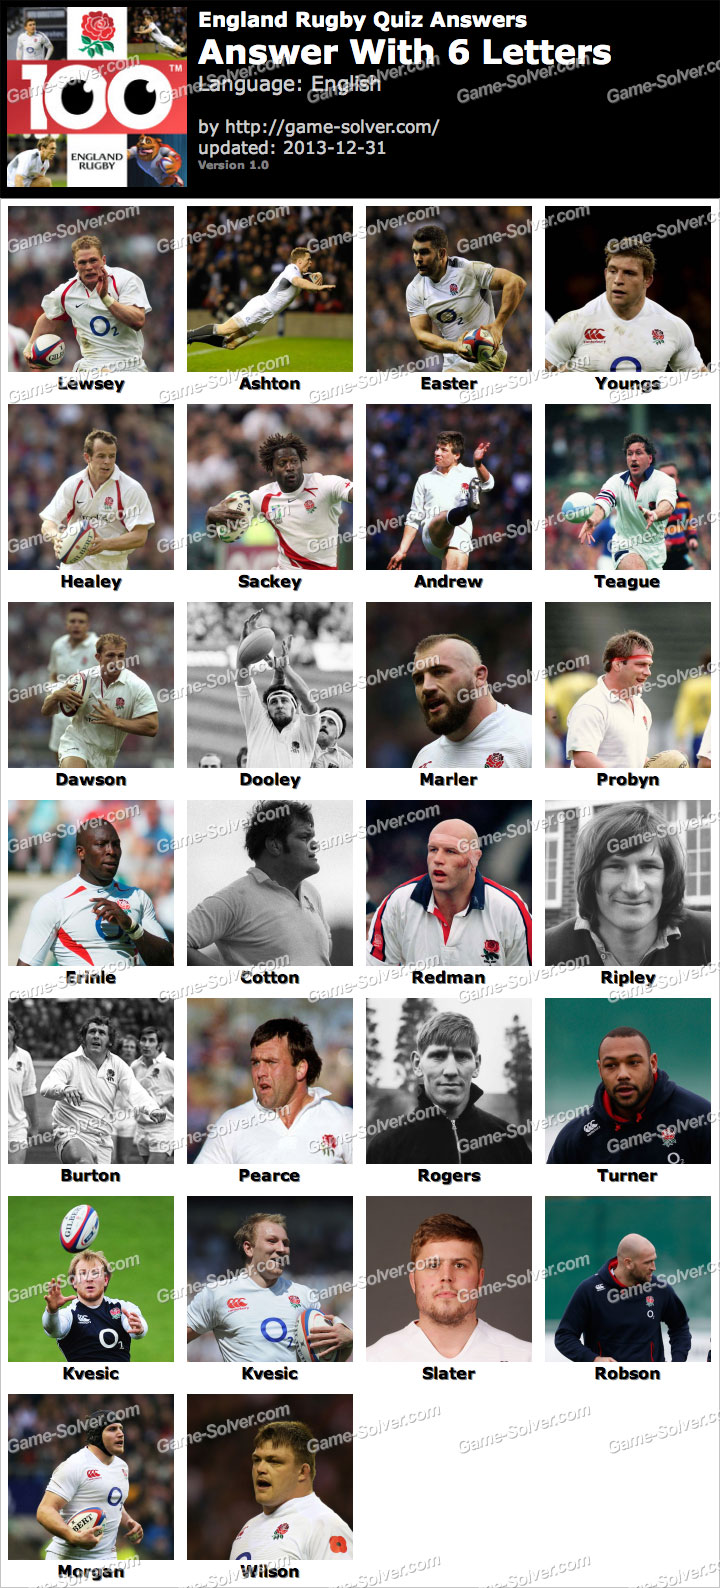 England Rugby Quiz 6 Letters